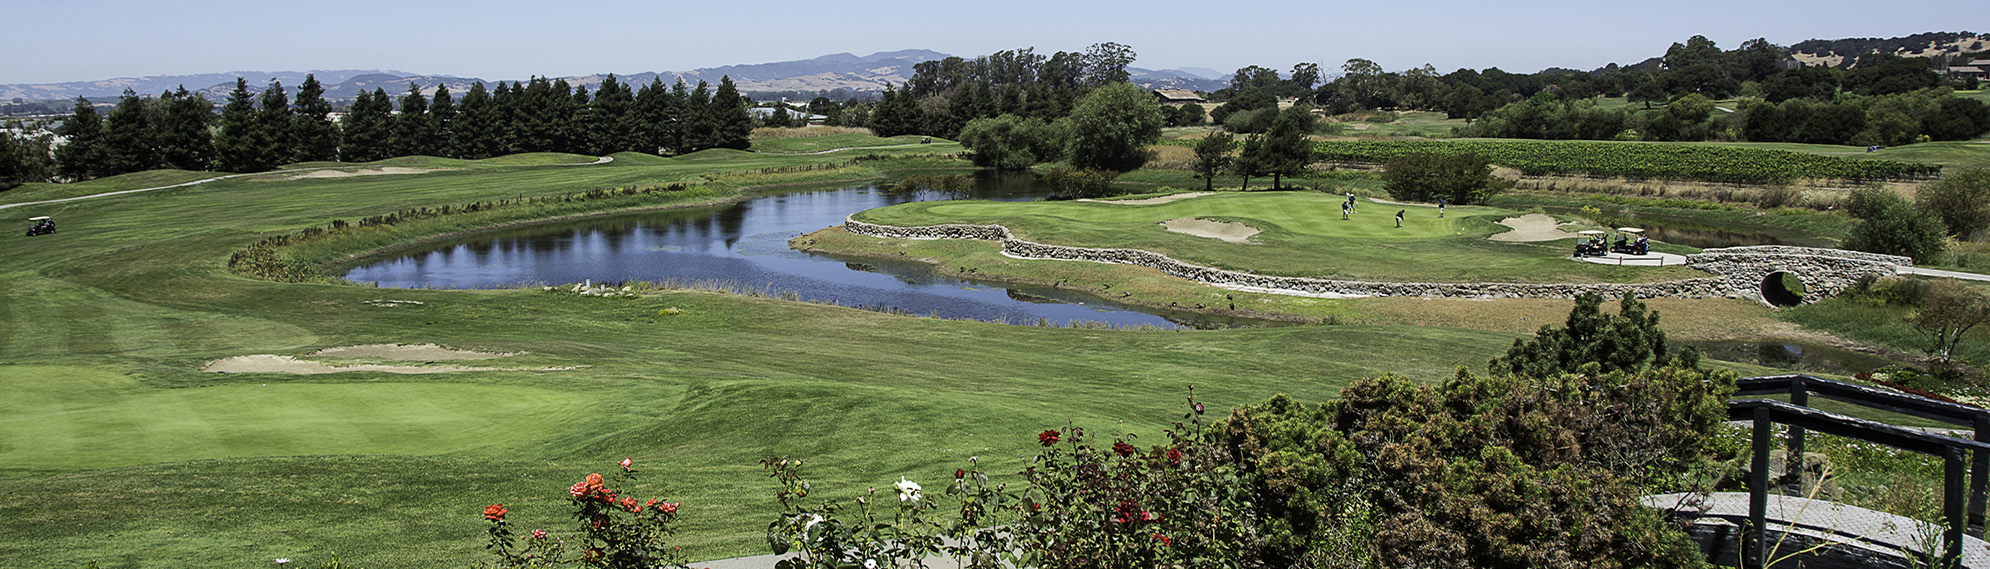 EBCA Golf Tourney July 21, 2017 at Eagle Vines in Napa